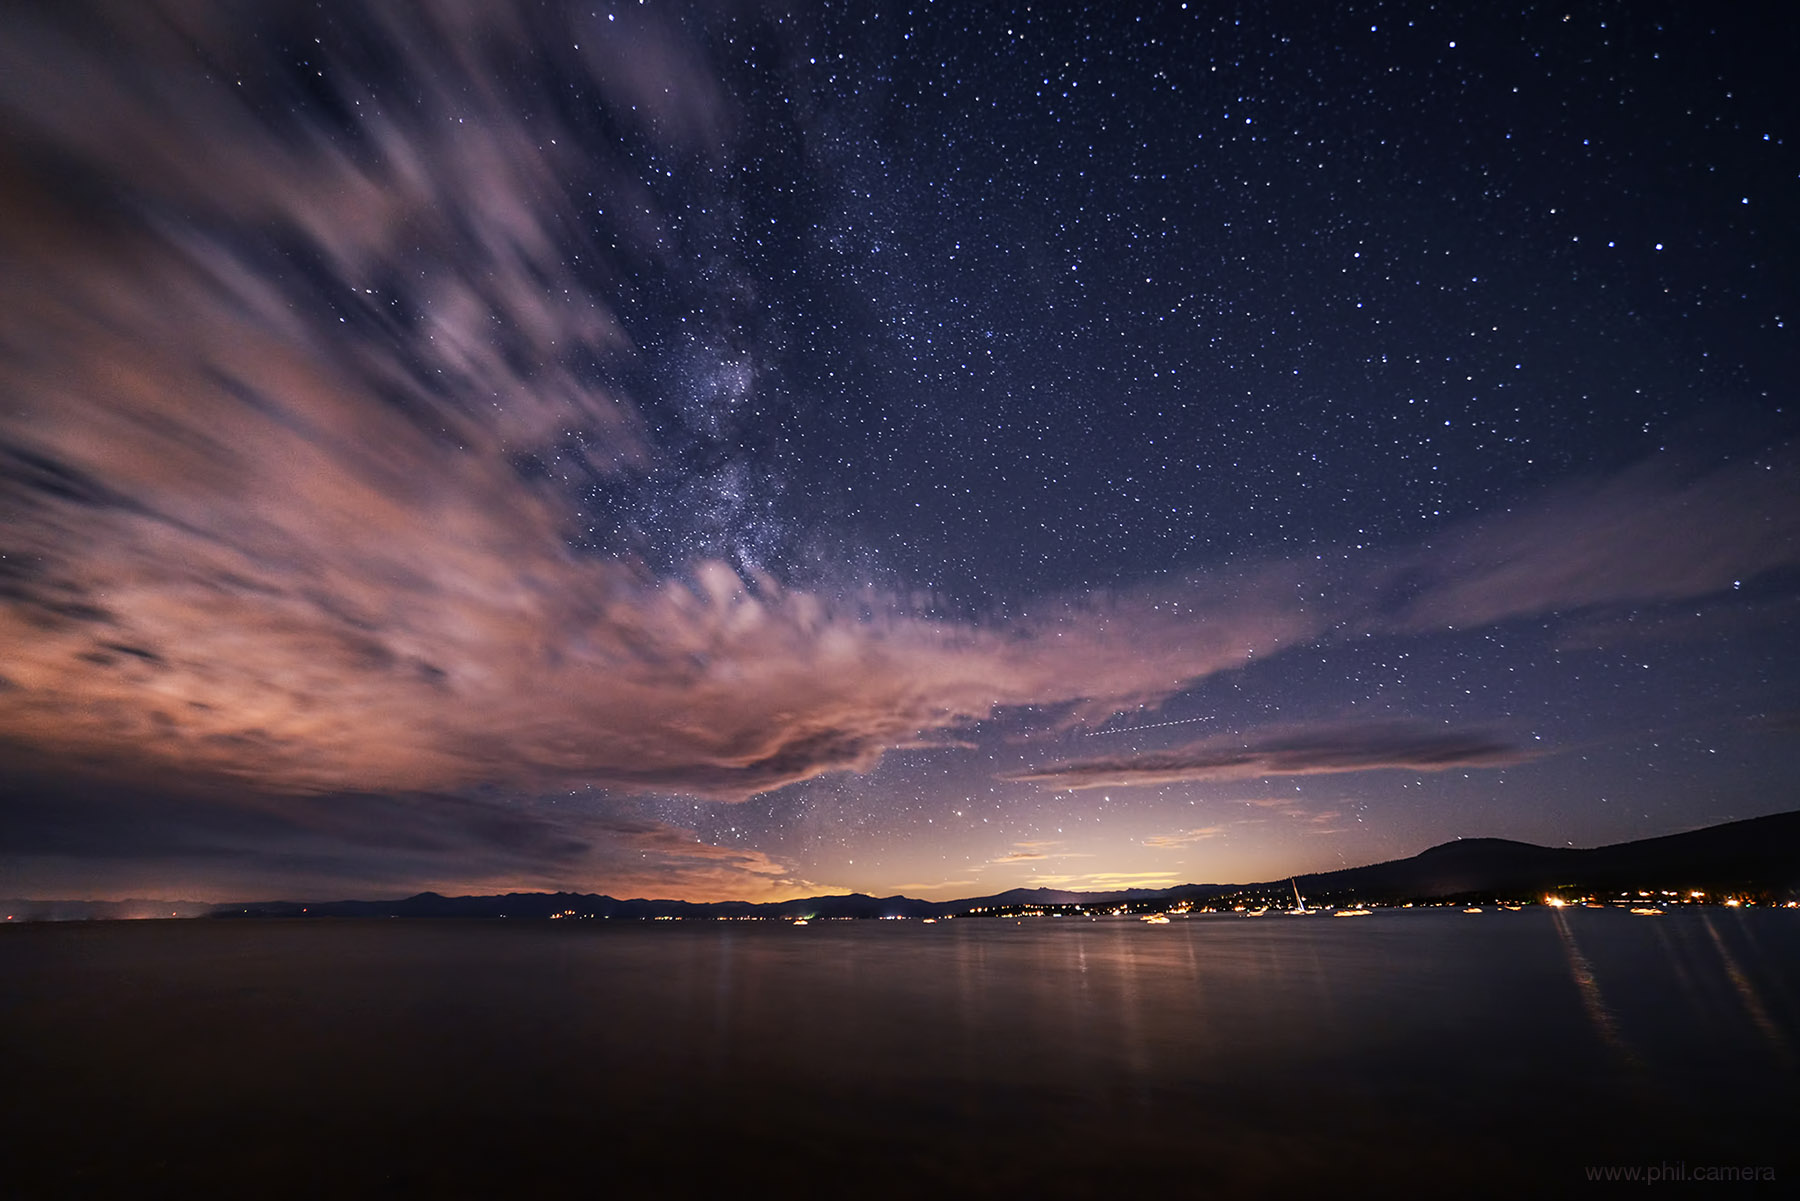 Milky Way and fast-moving clouds on